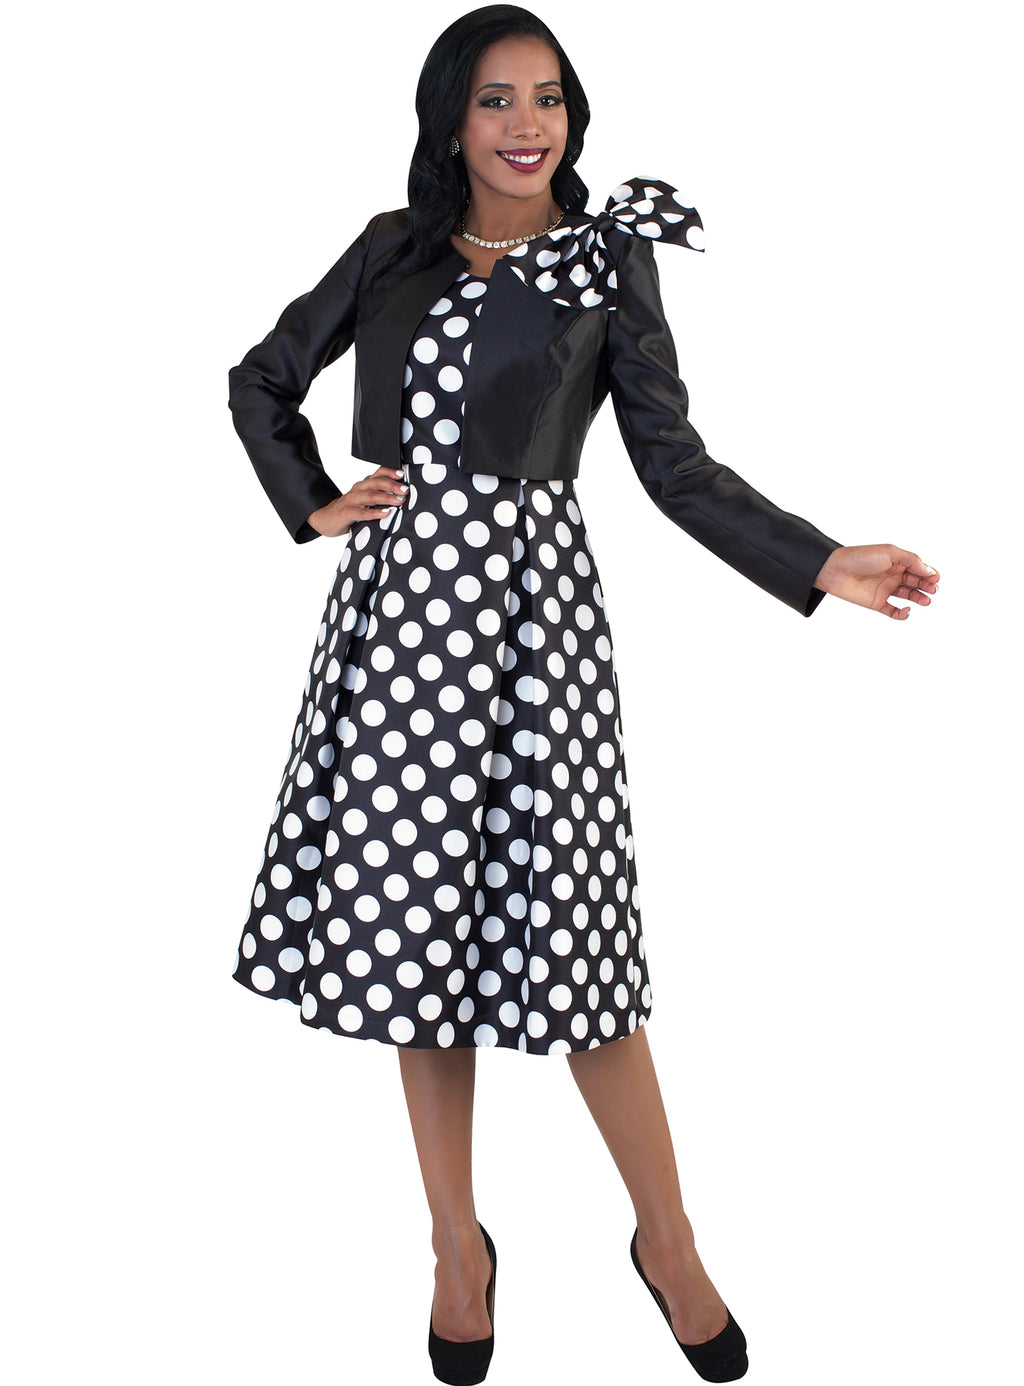 Polka Dot Dress with Bow 4637